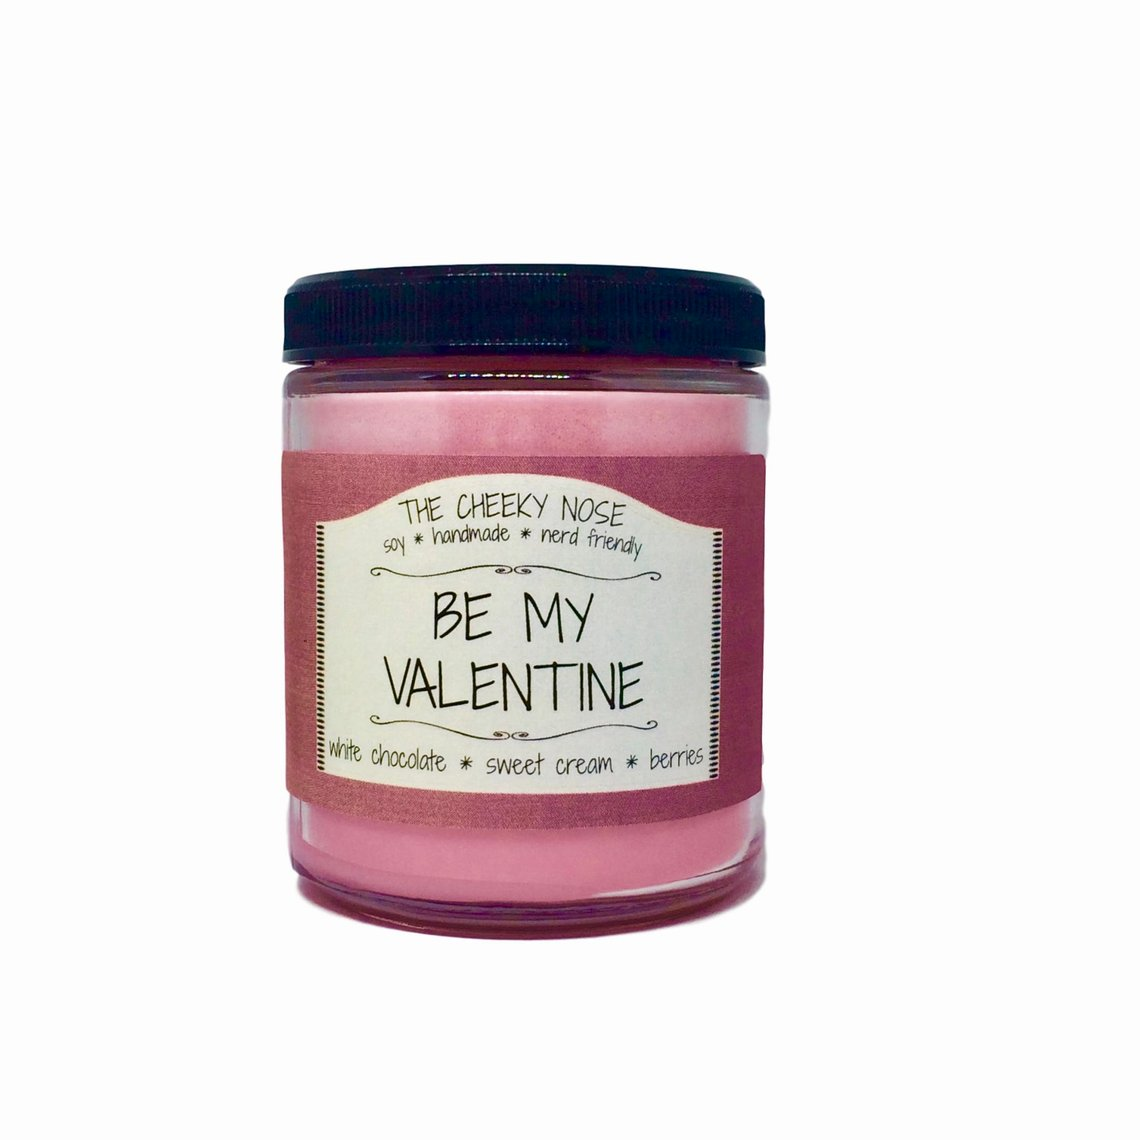 A bright pink candle in a glass jar with a raspberry colored label